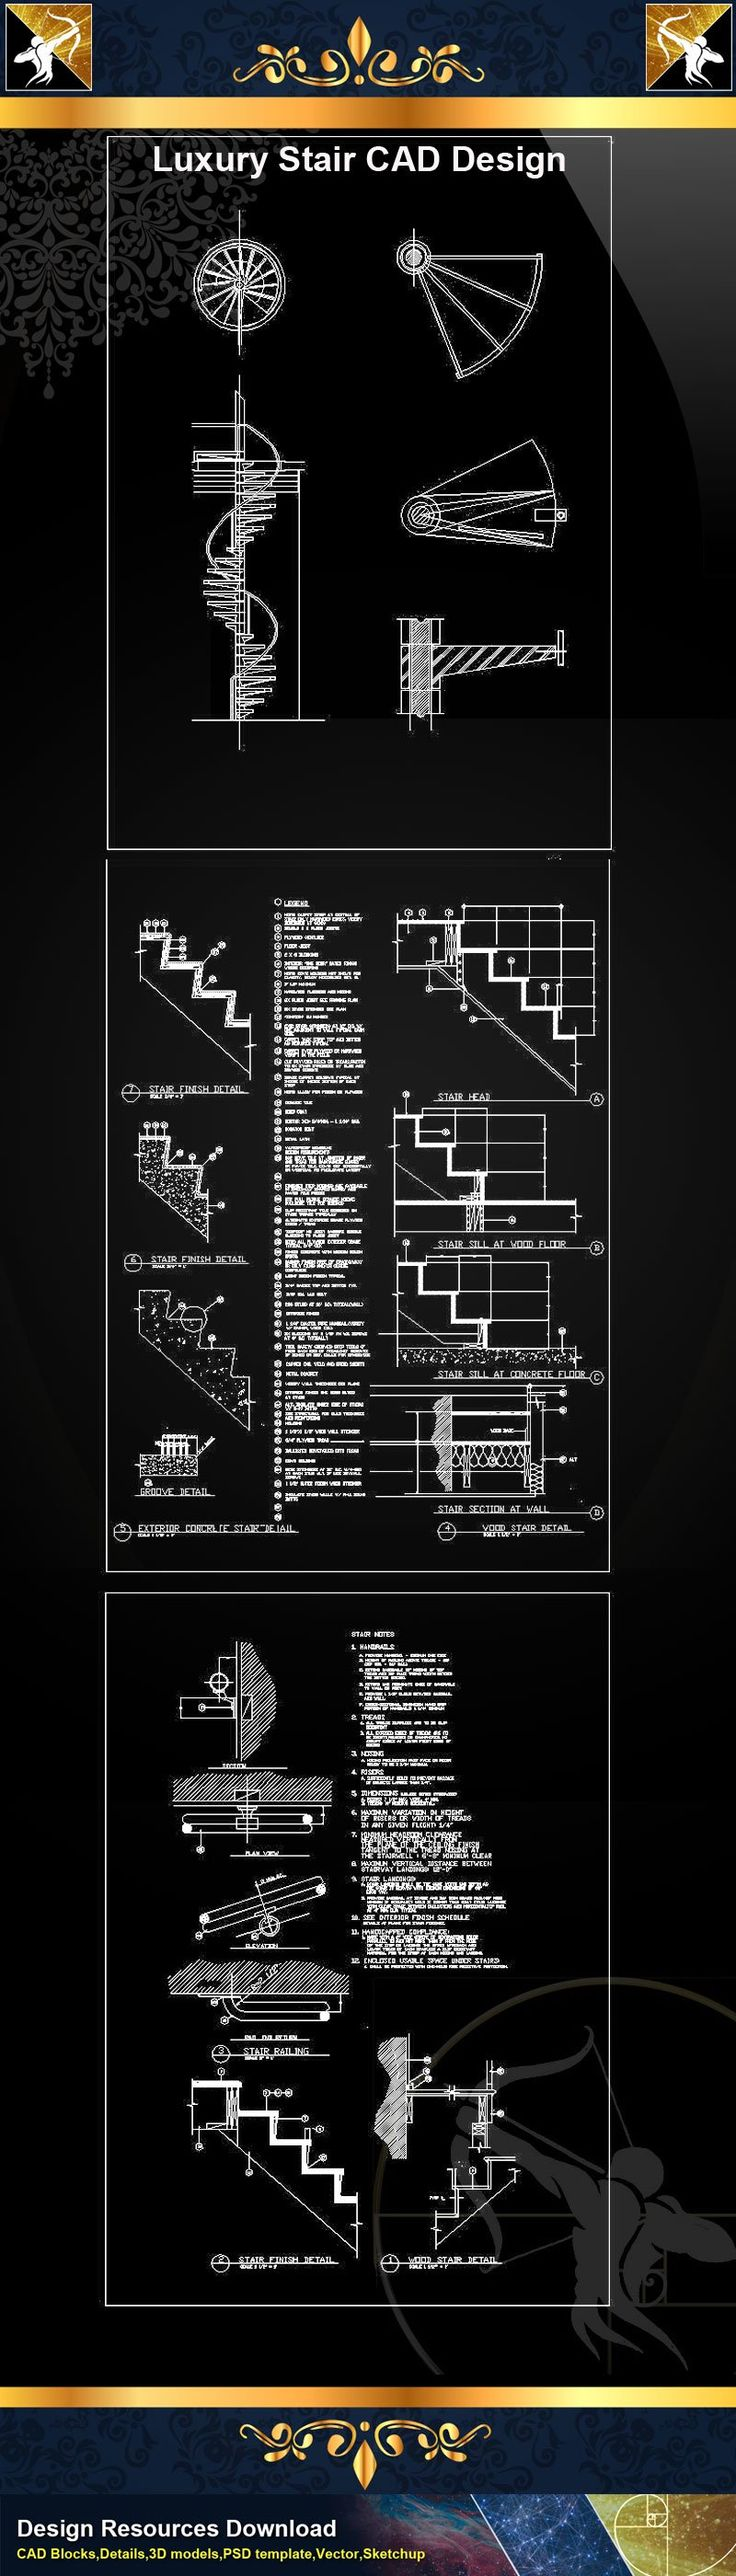 27 best CAD DRAWINGS images on Pinterest | Cad drawing, Architecture ...